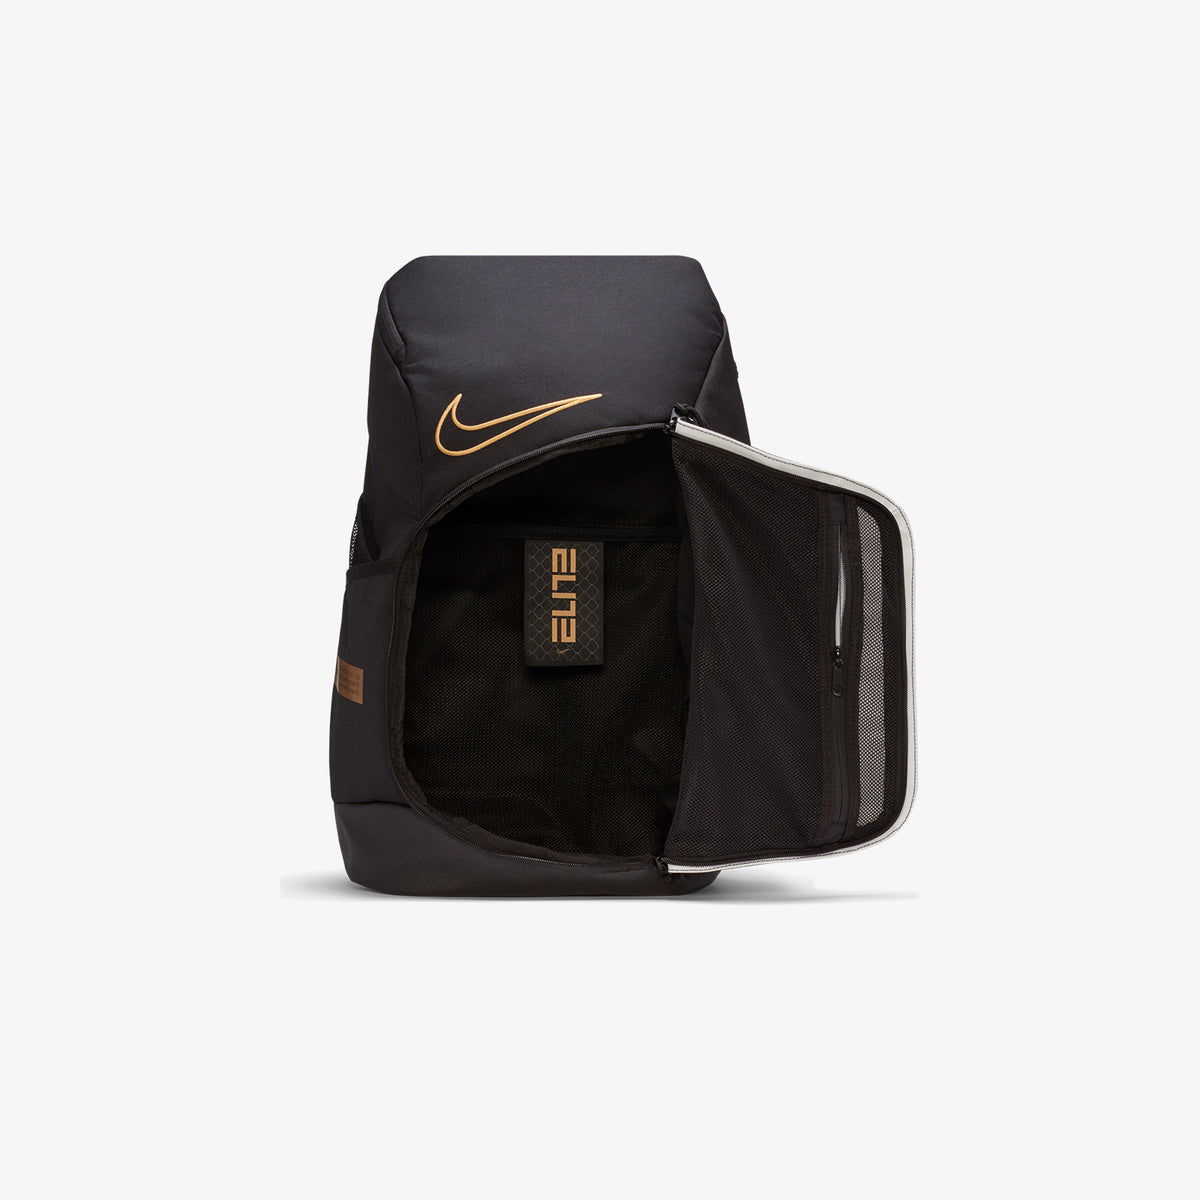 Nike Elite Pro Basketball Backpack - Black/Gold